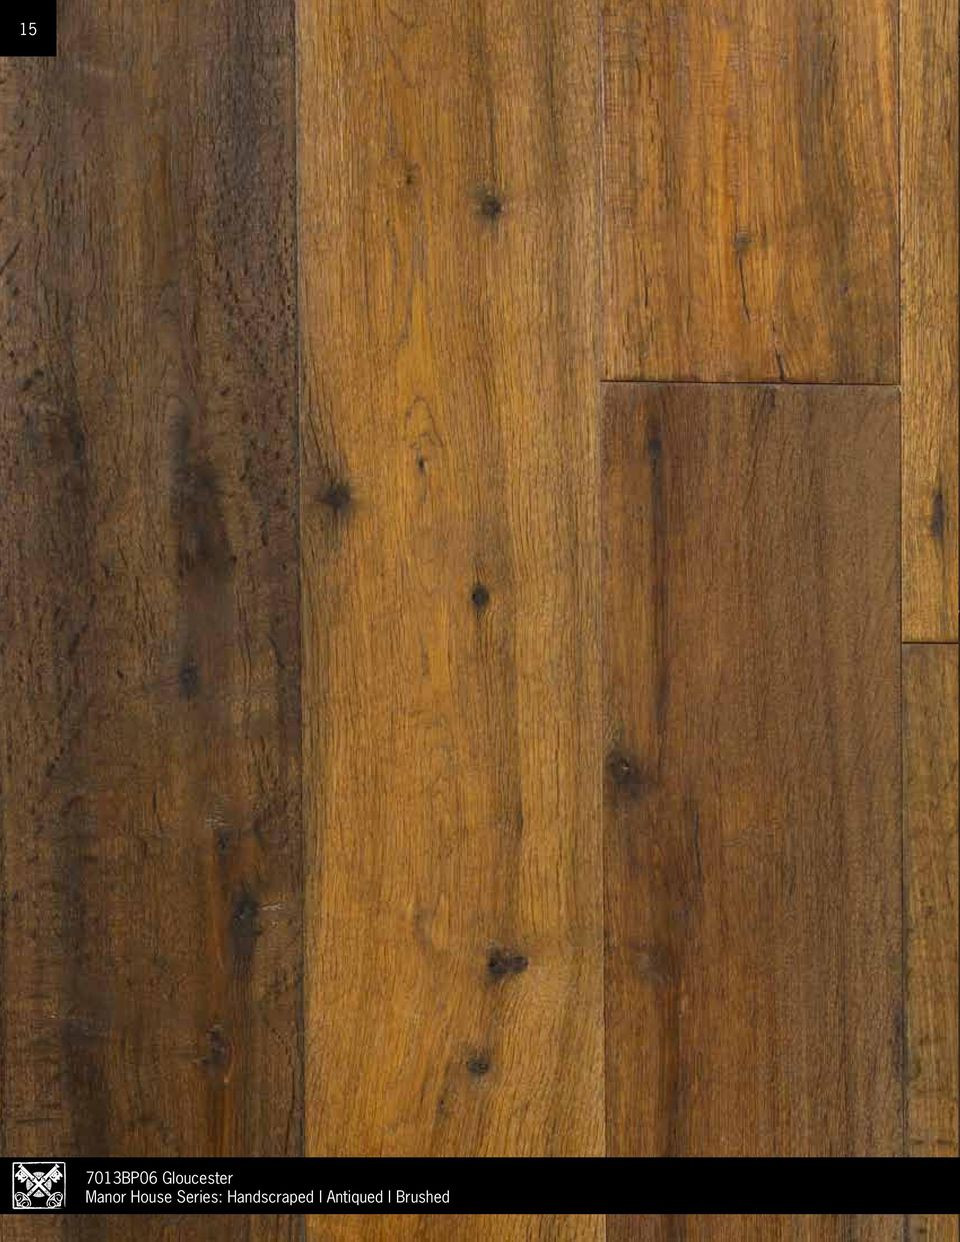 homerwood hardwood flooring reviews of make any home a castle pdf pertaining to house series